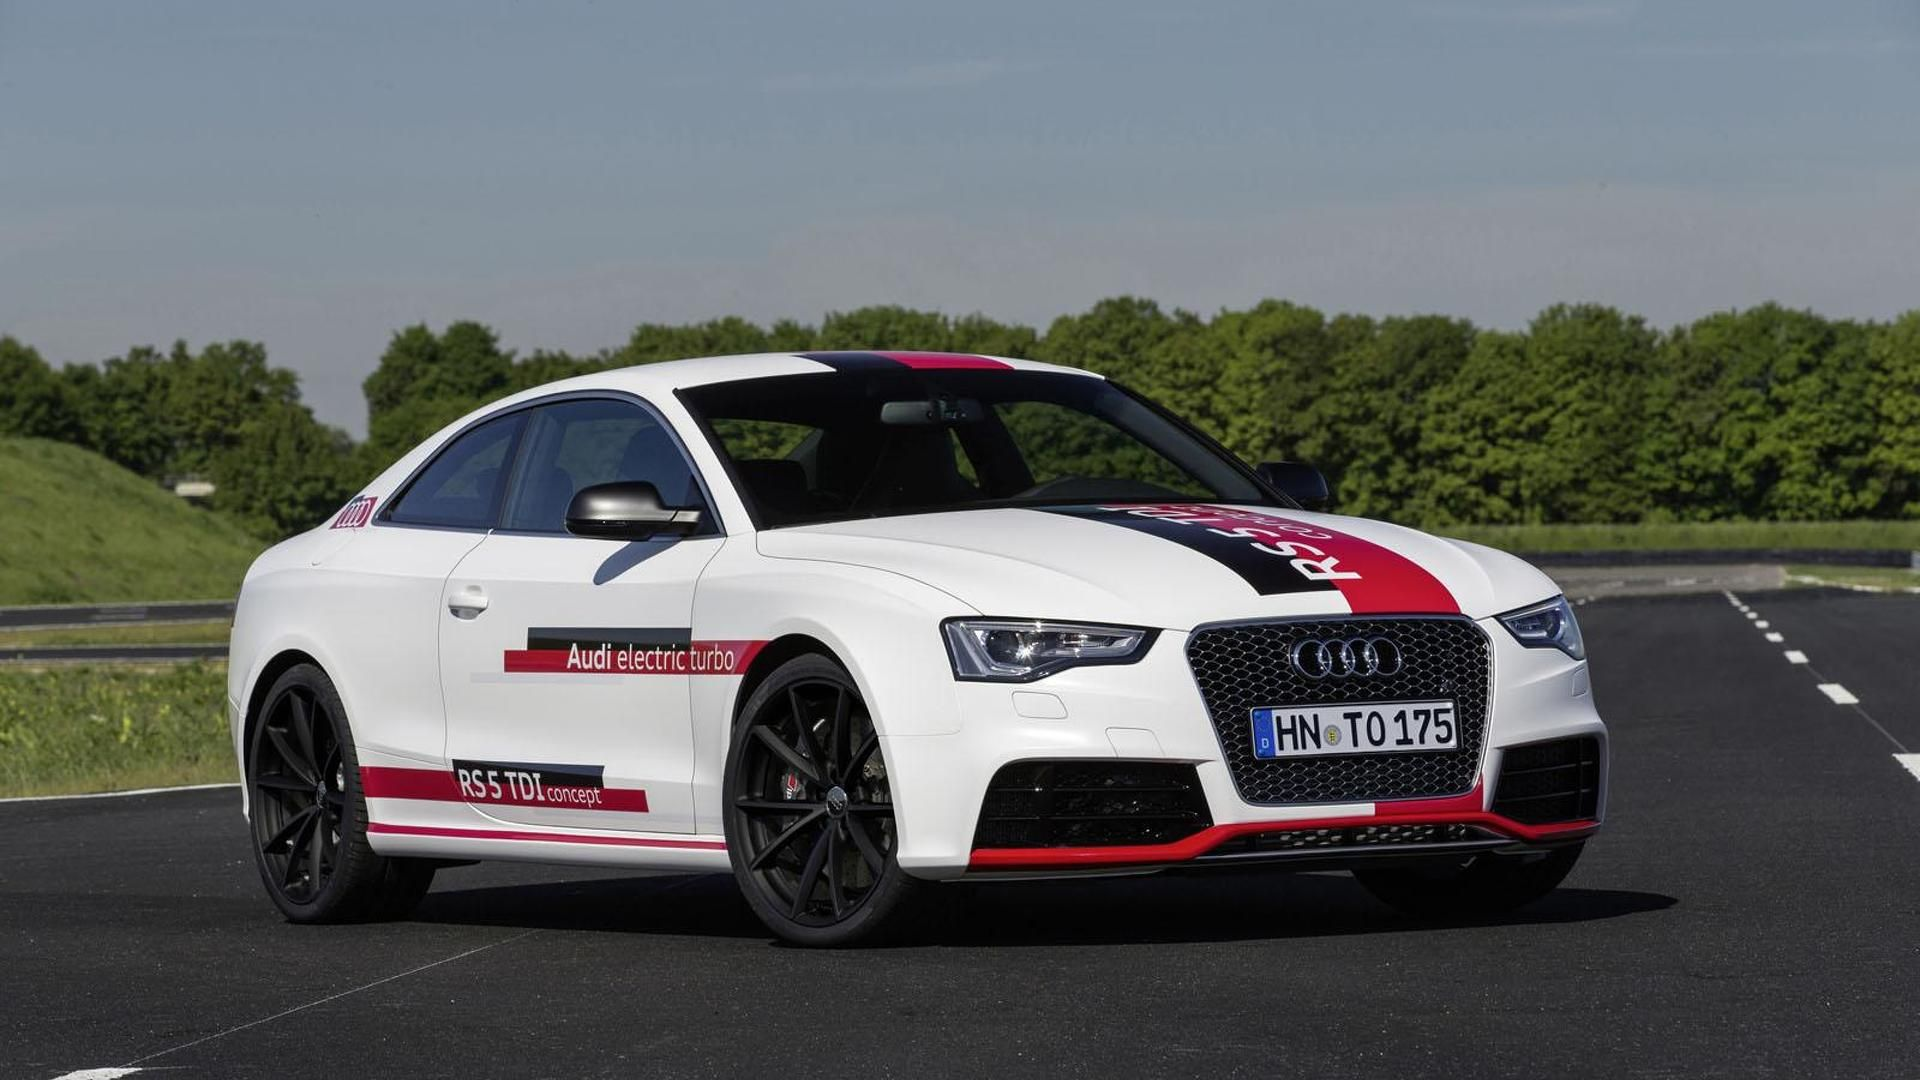 2020 Audi Rs5 Tdi - CakHD : CakHD